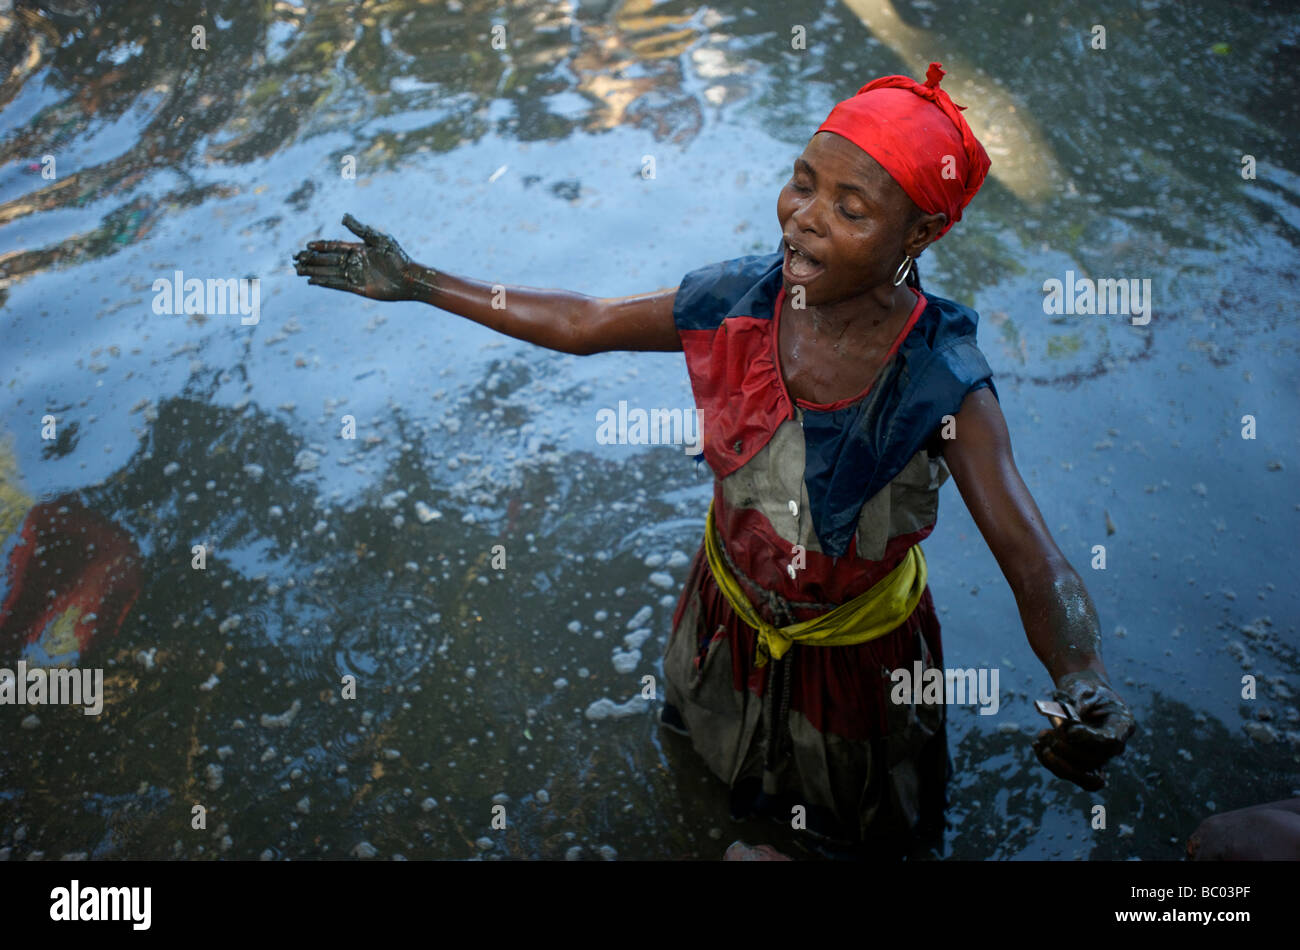 A voodoo priestess sings during a voodoo festival in a mud pit in Haiti. - Stock Image